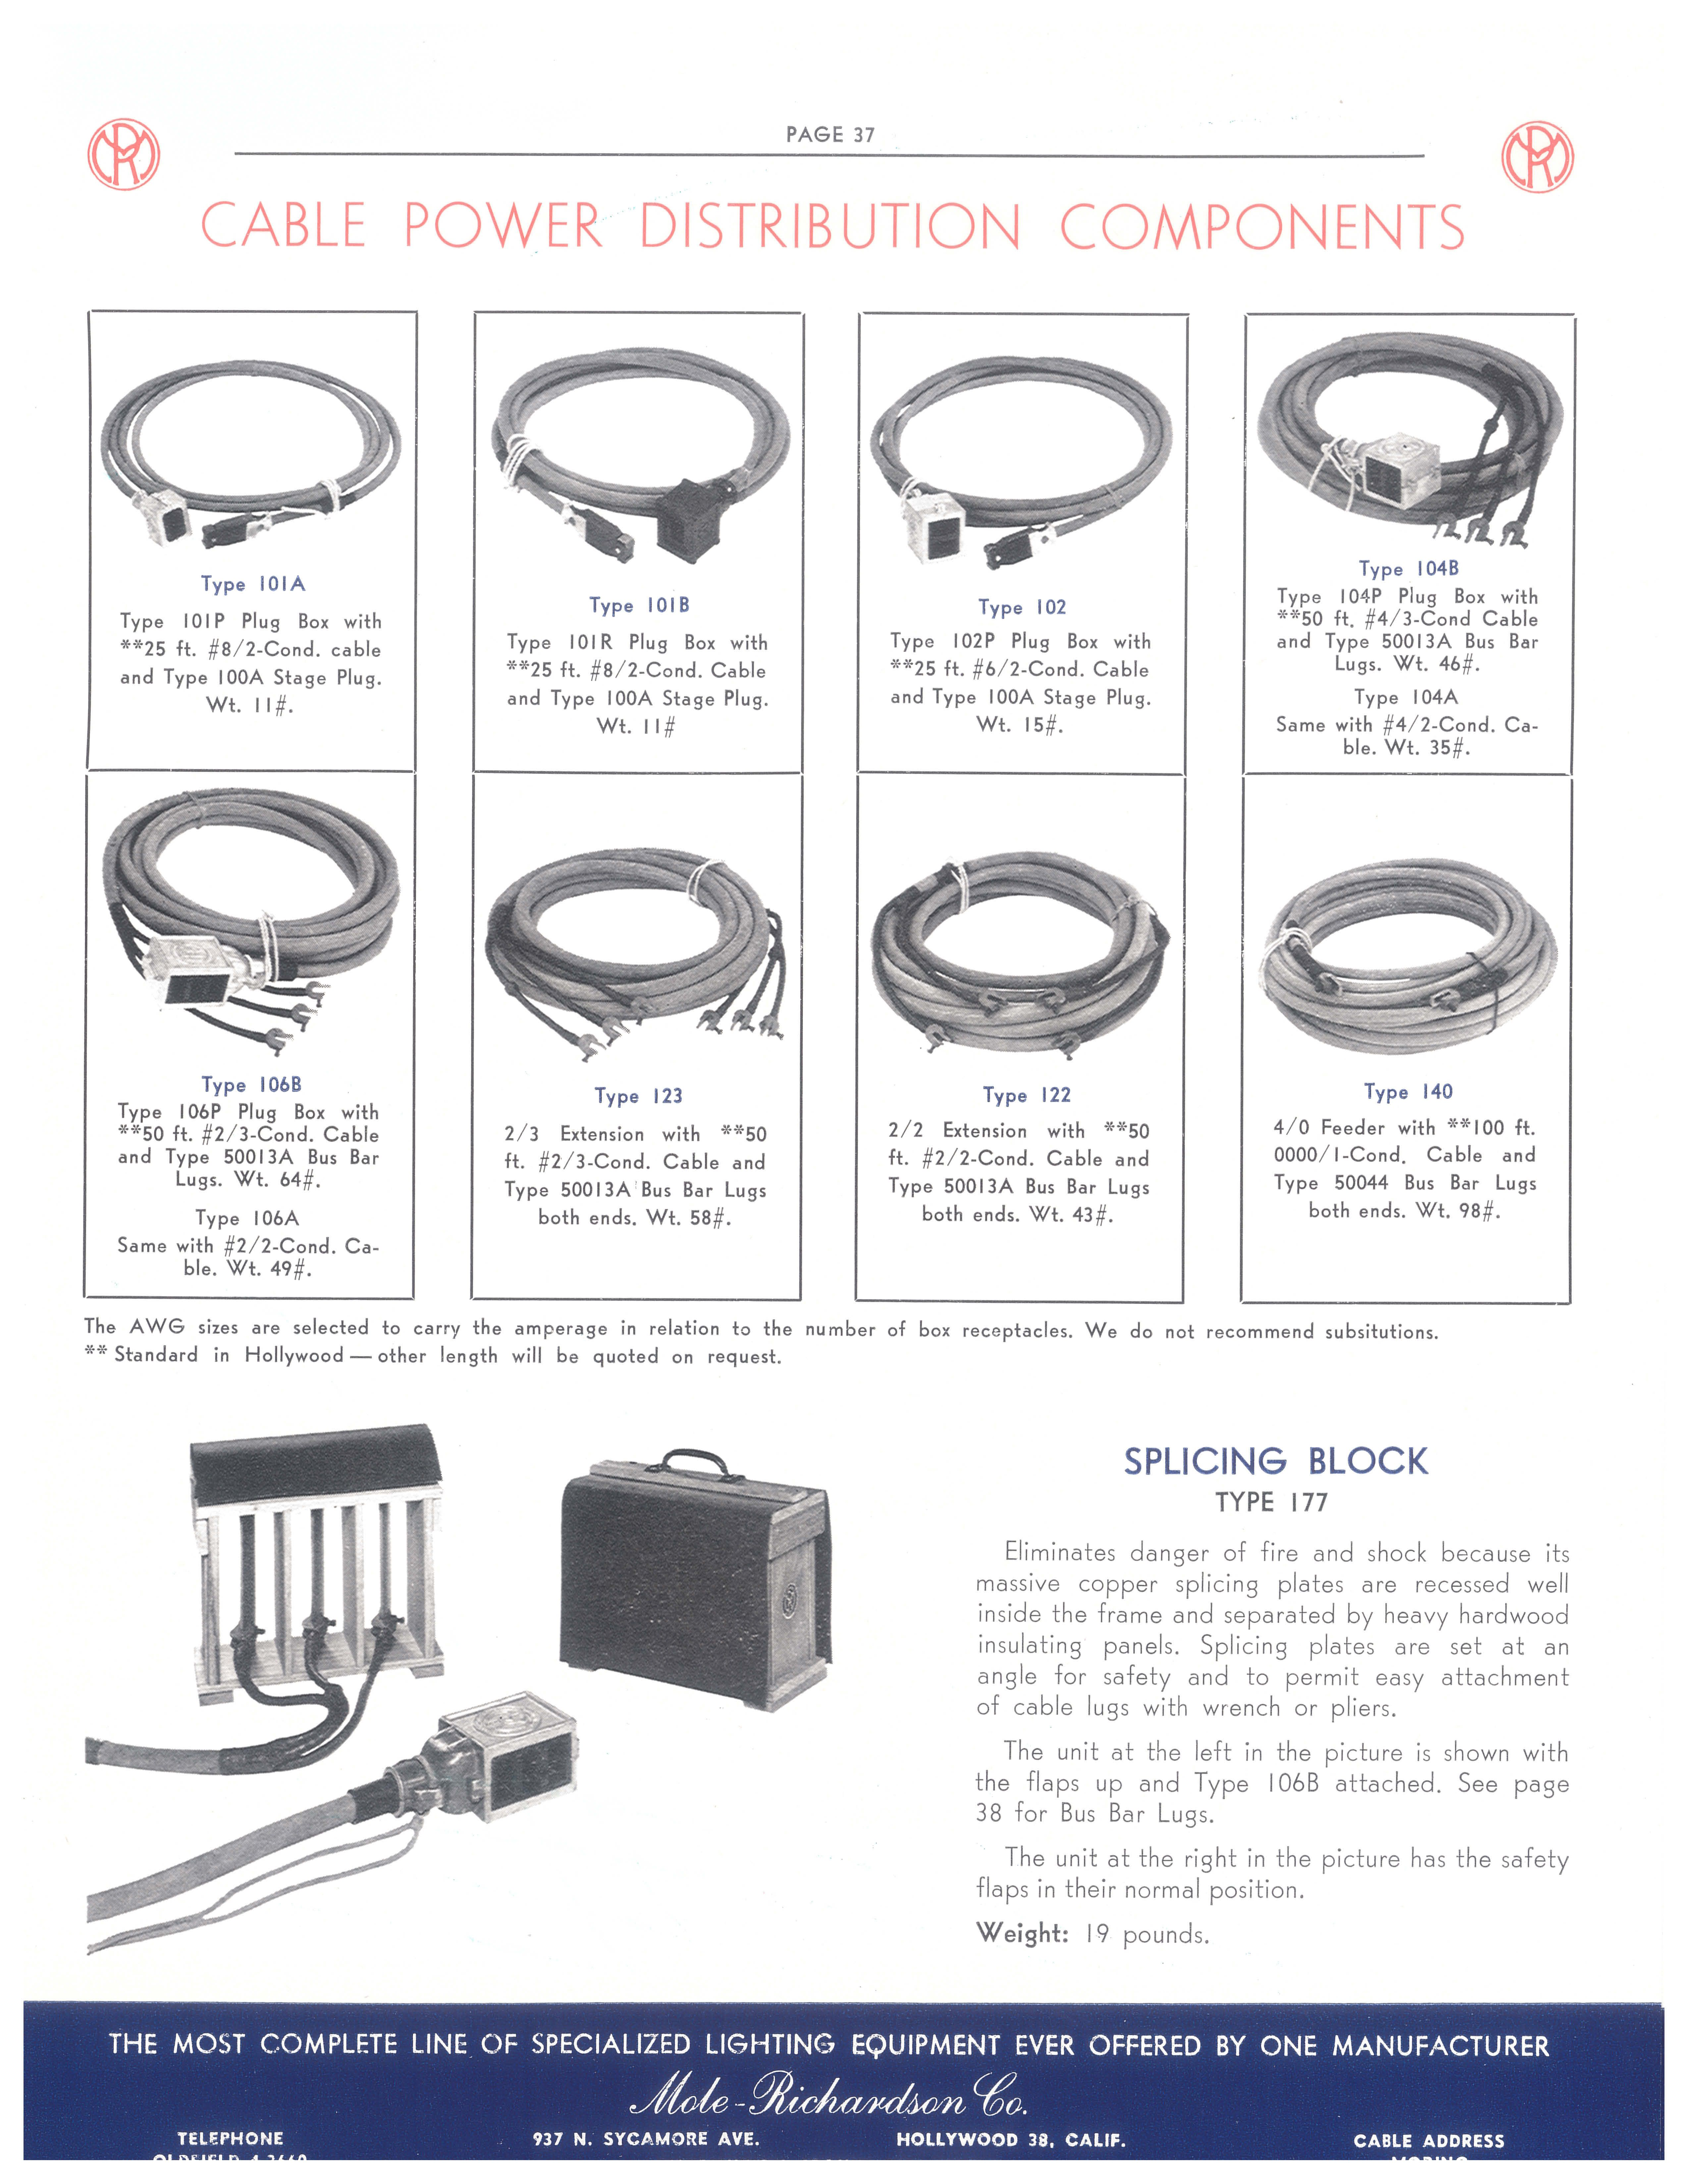 #Cable #Power #Distribution #Components    http://www.mole.com    #light #lighting #gaffer #cinematography #mole #molelight #molerichardson #molerichardsonlighting #arri #film #filmschool